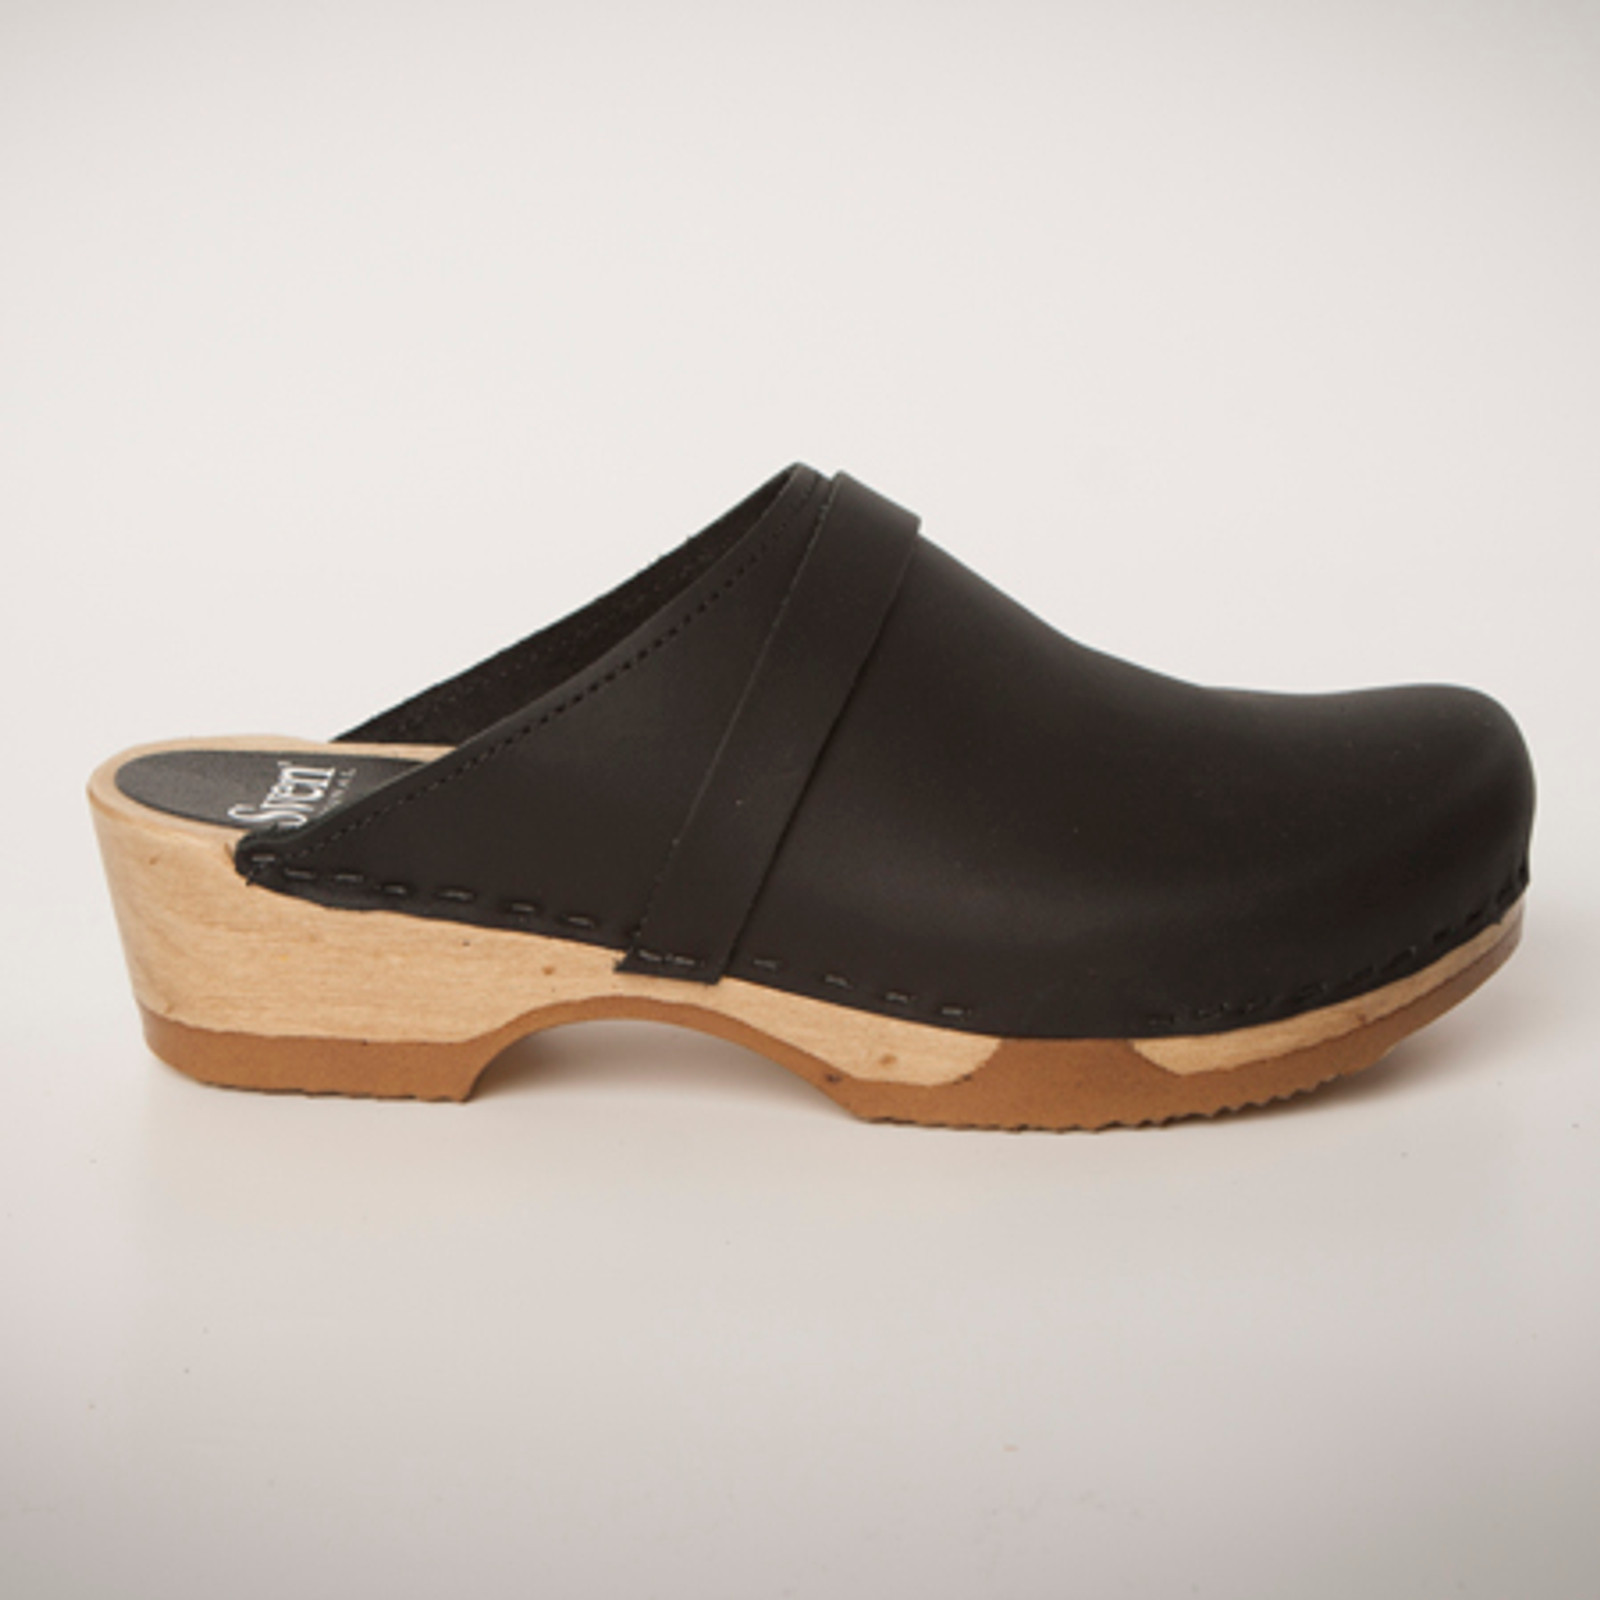 Plain Clogs with Straps - Low Heel - Bendable